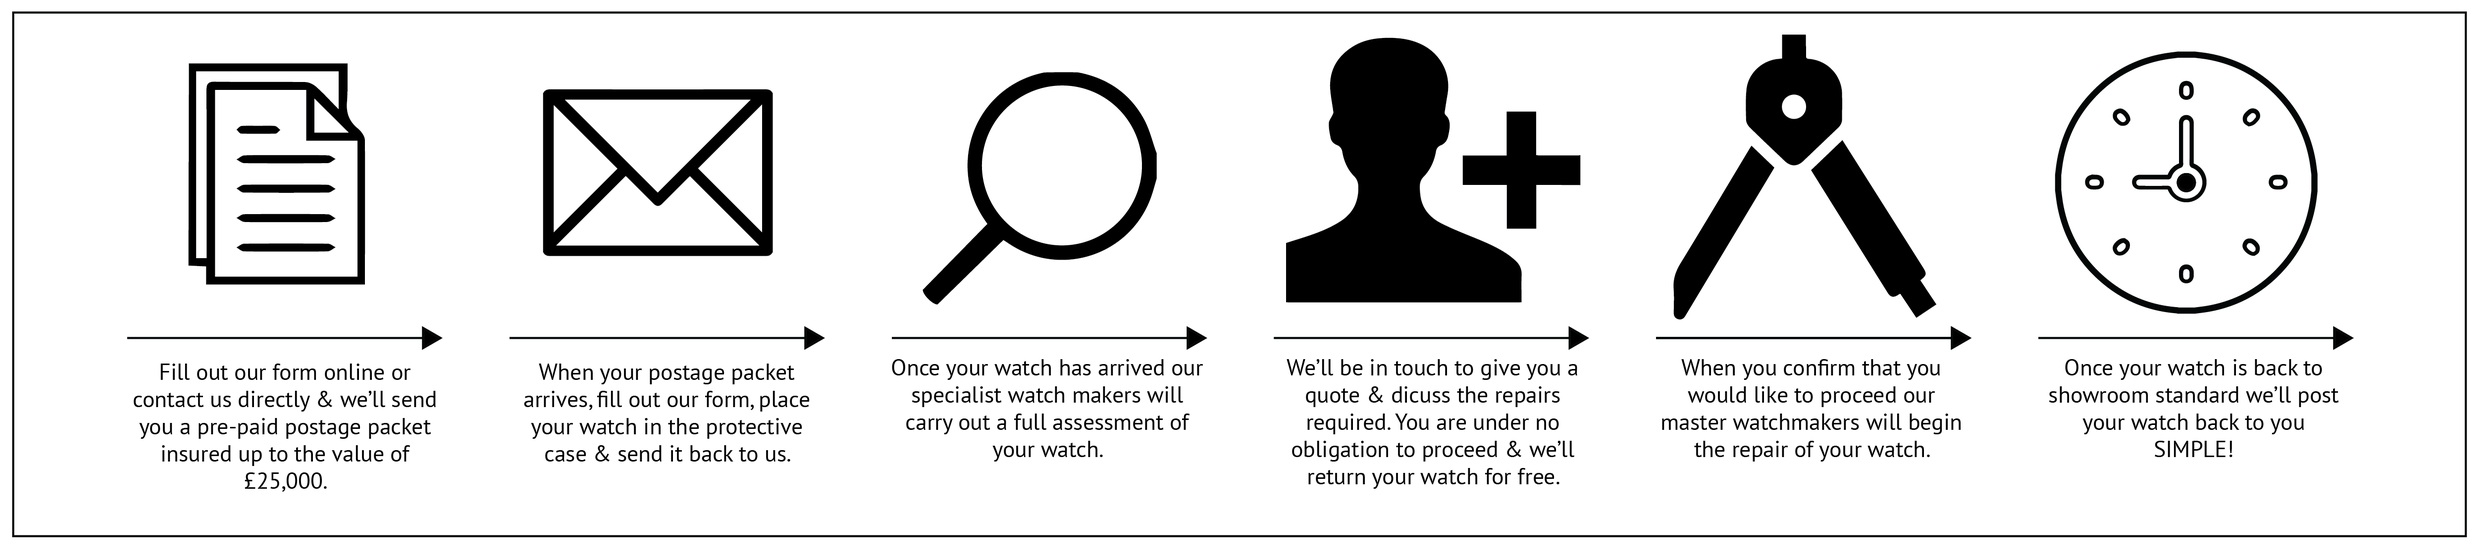 Pre-paid postage service to bring your watch back to showroom standard.